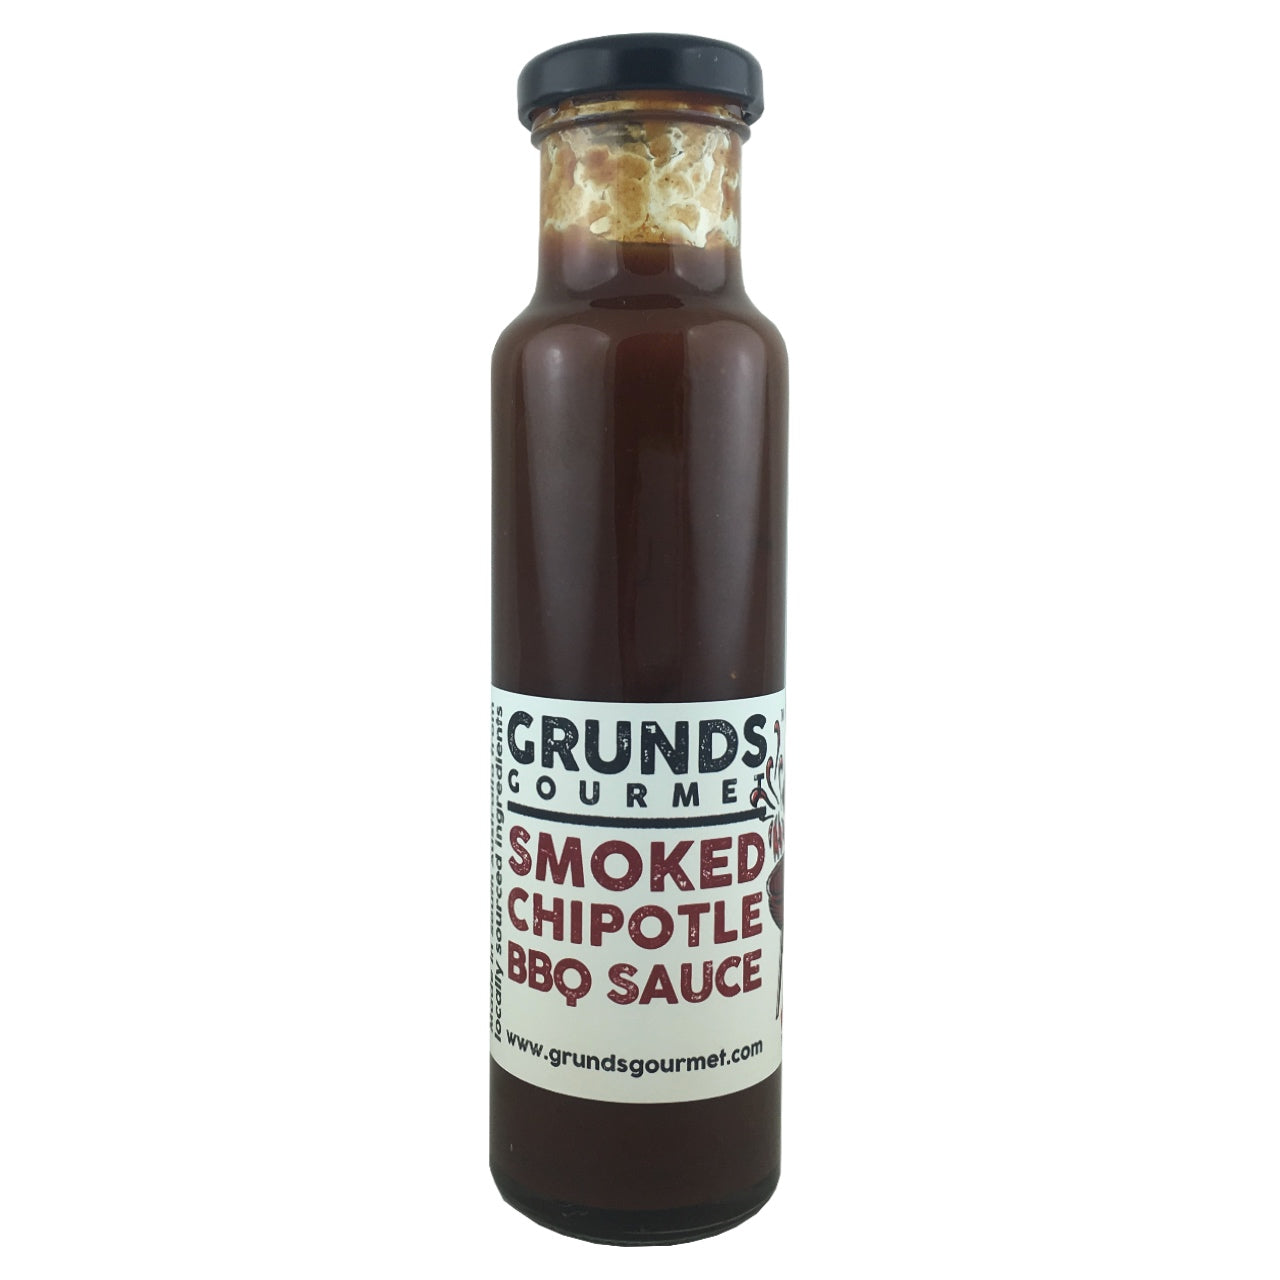 Grunds Gourmet Smoked Chipotle BBQ Sauce